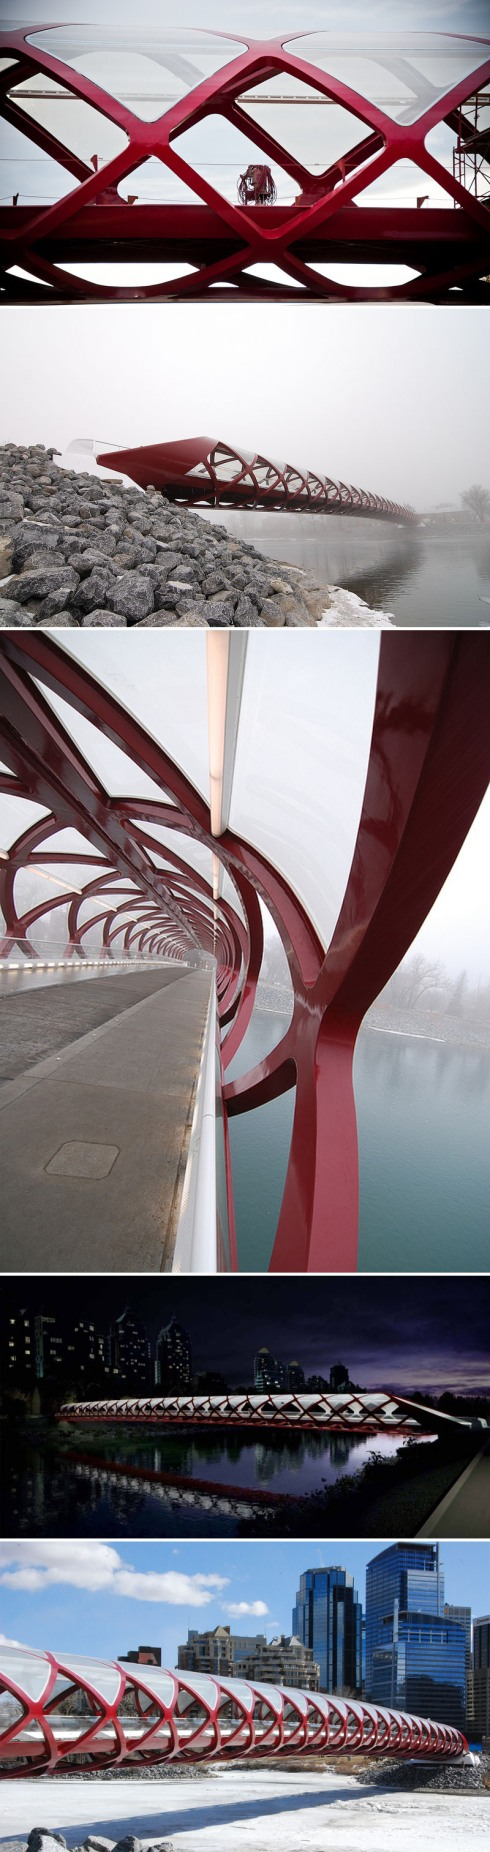 Santiago Calatrava, Peace Bridge, Helix, Contemporary Bridge Design, Pedestrian Bridge,Calgary, Canada